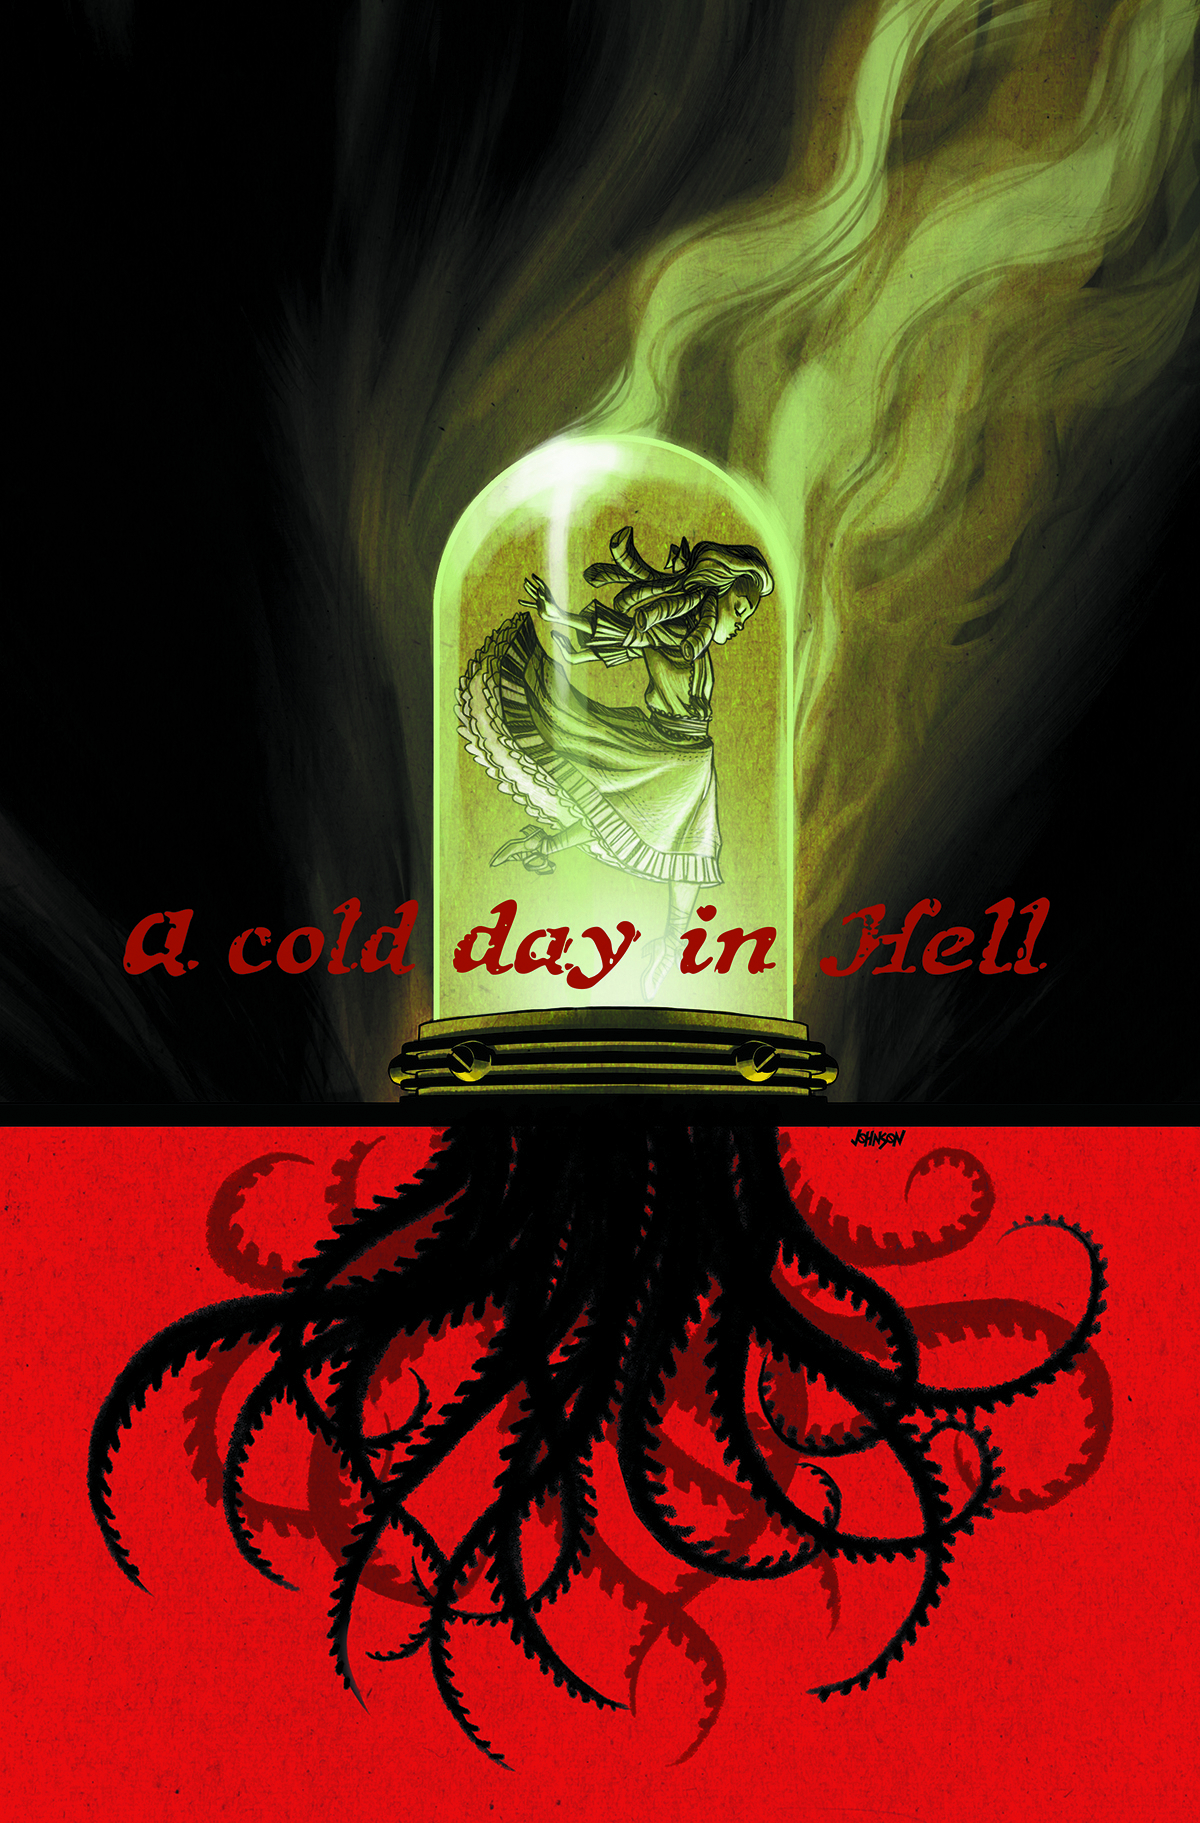 BPRD HELL ON EARTH #106 COLD DAY IN HELL #2